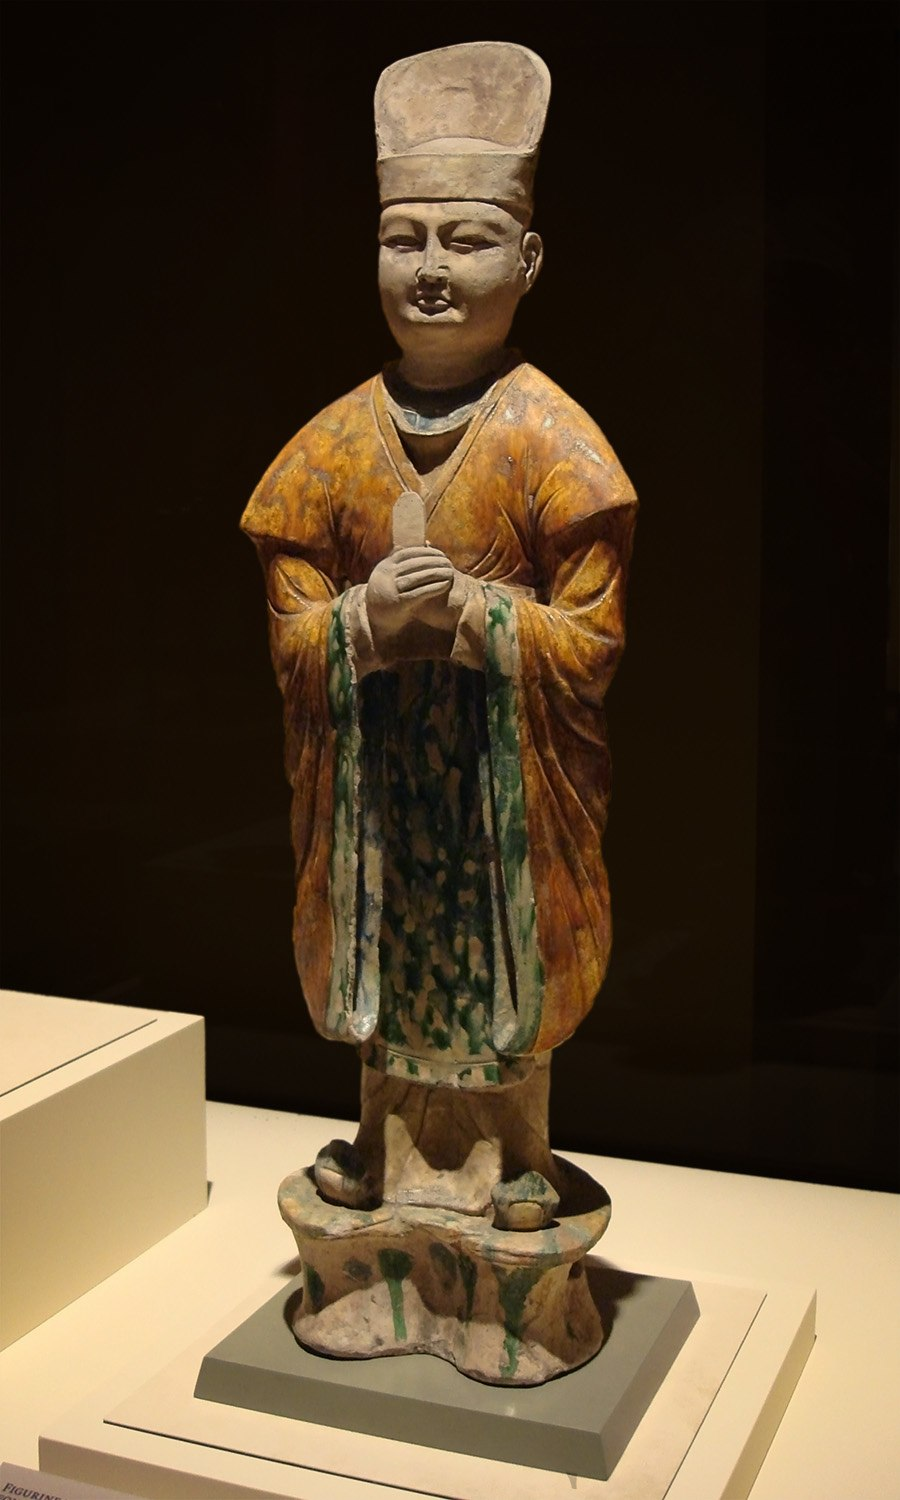 CMOC Treasures of Ancient China exhibit - tri-coloured figure of a civil official